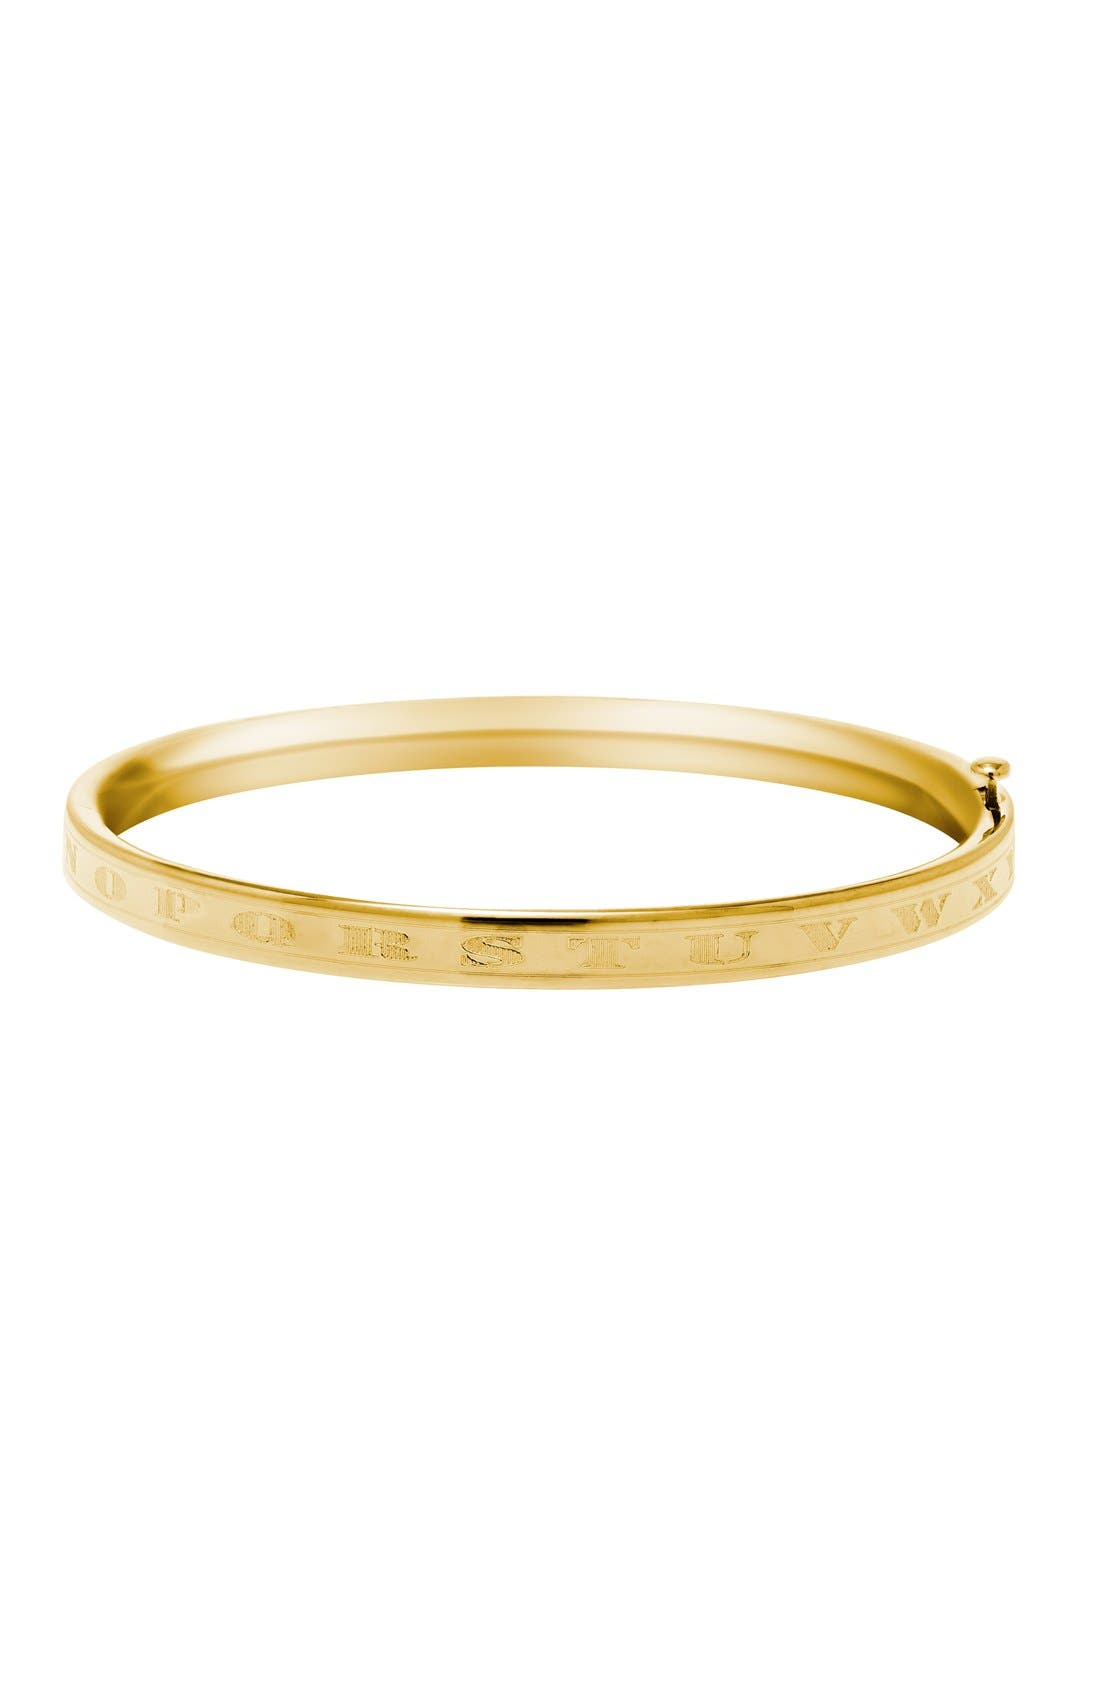 'Alpha Baby' Gold Bracelet,                             Main thumbnail 1, color,                             GOLD